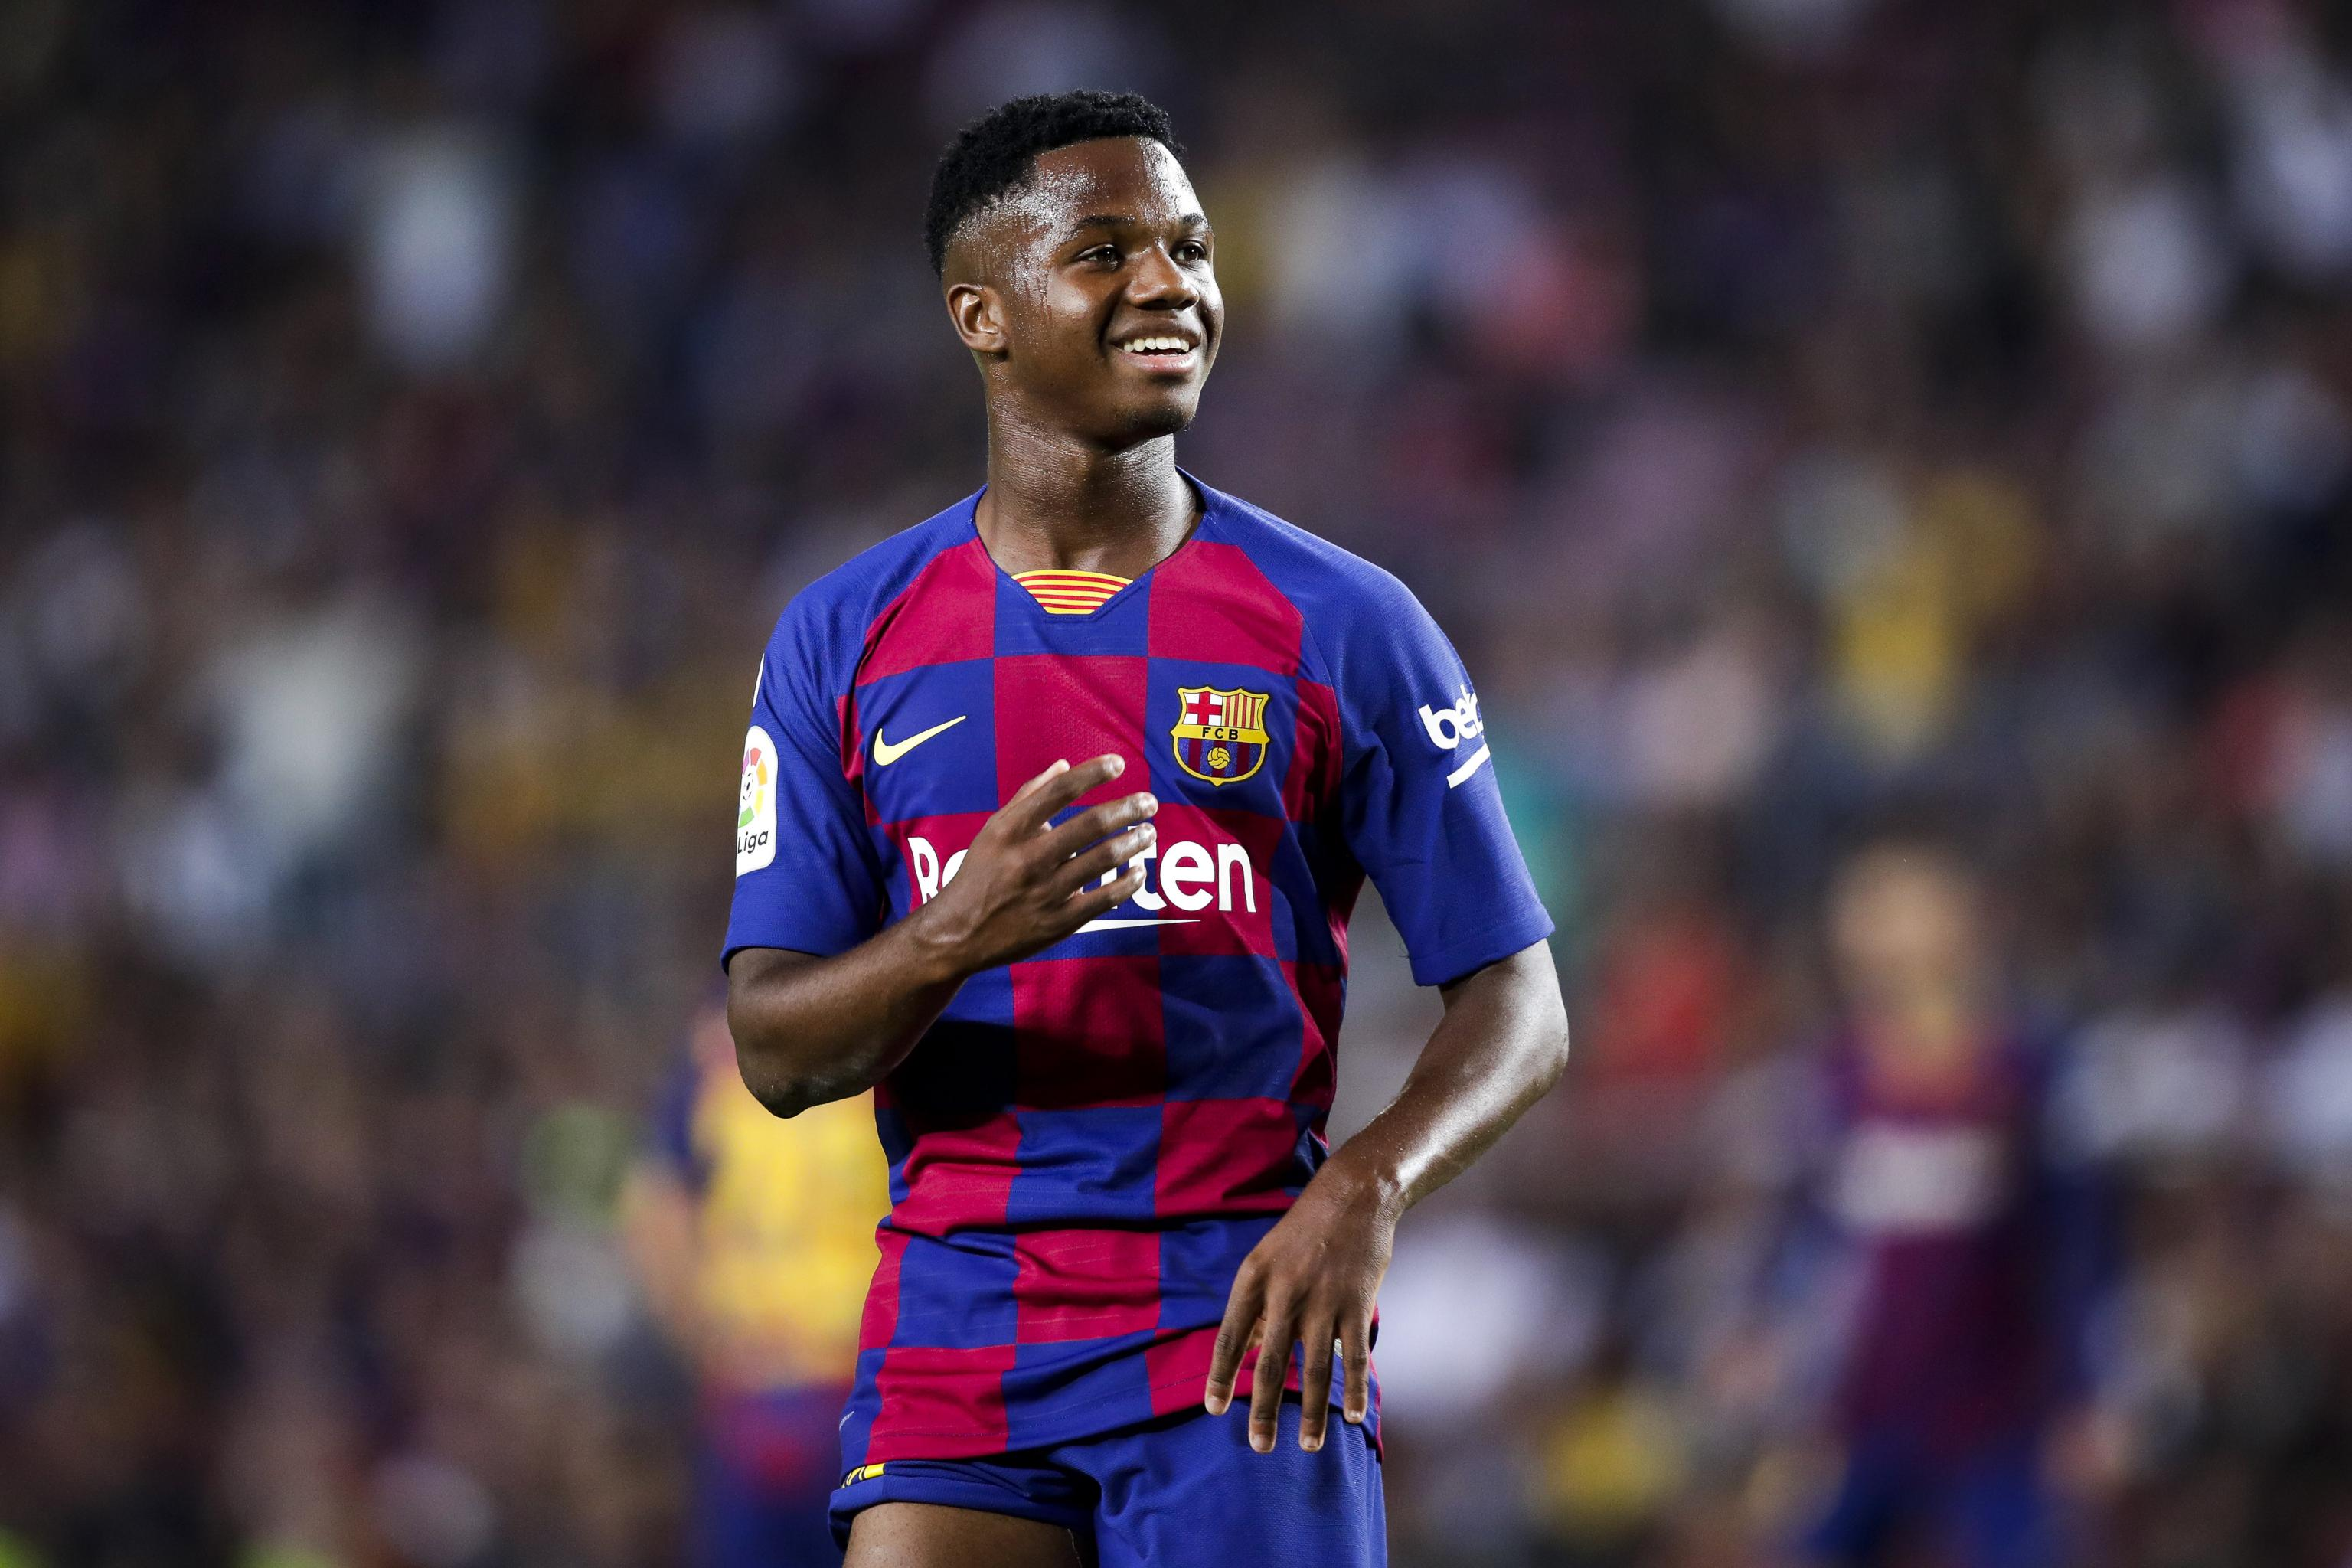 Ernesto Valverde: Barcelona Need To Protect Ansu Fati From Hype